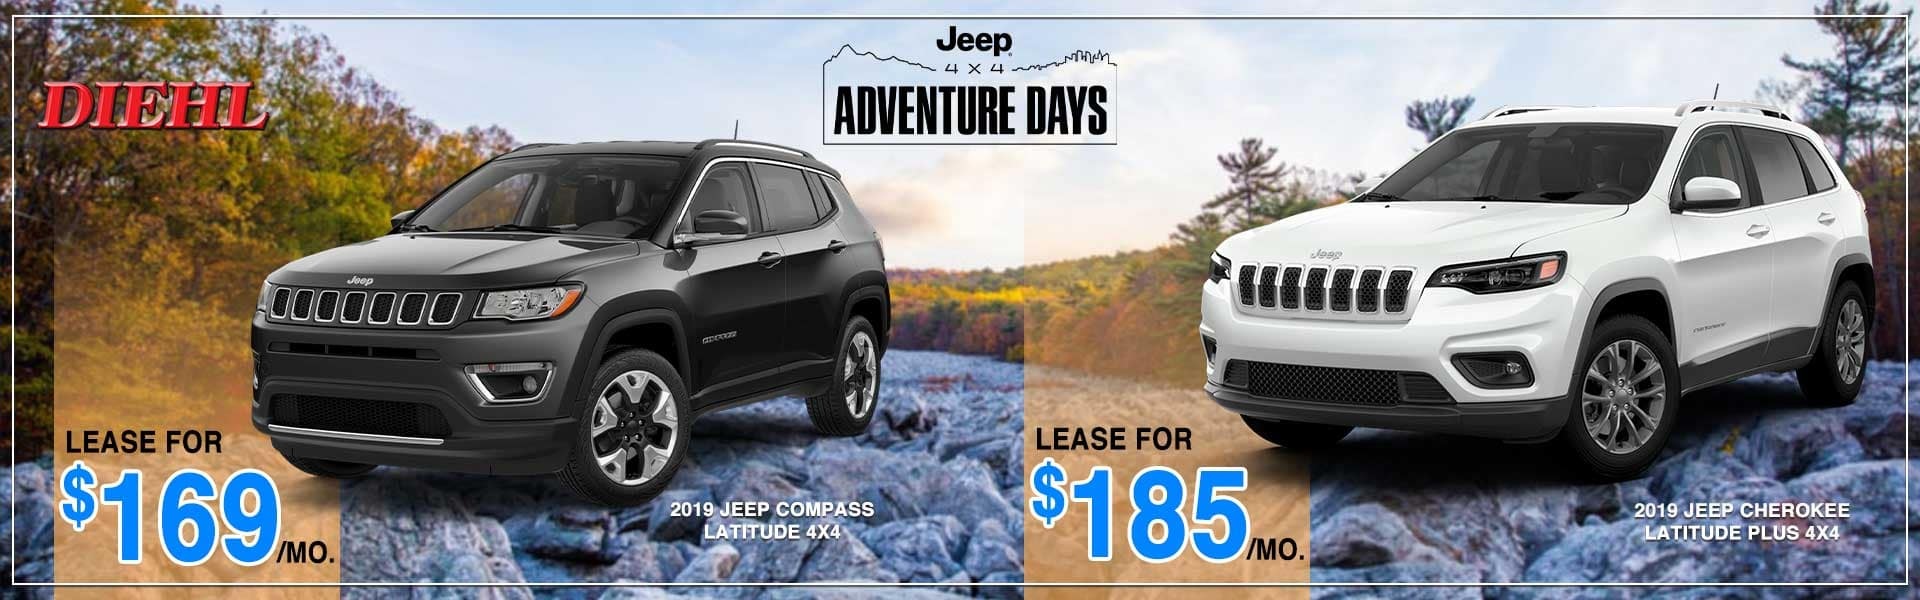 Ram power days dodge power dollars jeep adventure days Chrysler dodge jeep ram carright Diehl auto Robinson lease special new vehicle special ram lease jeep lease mopar